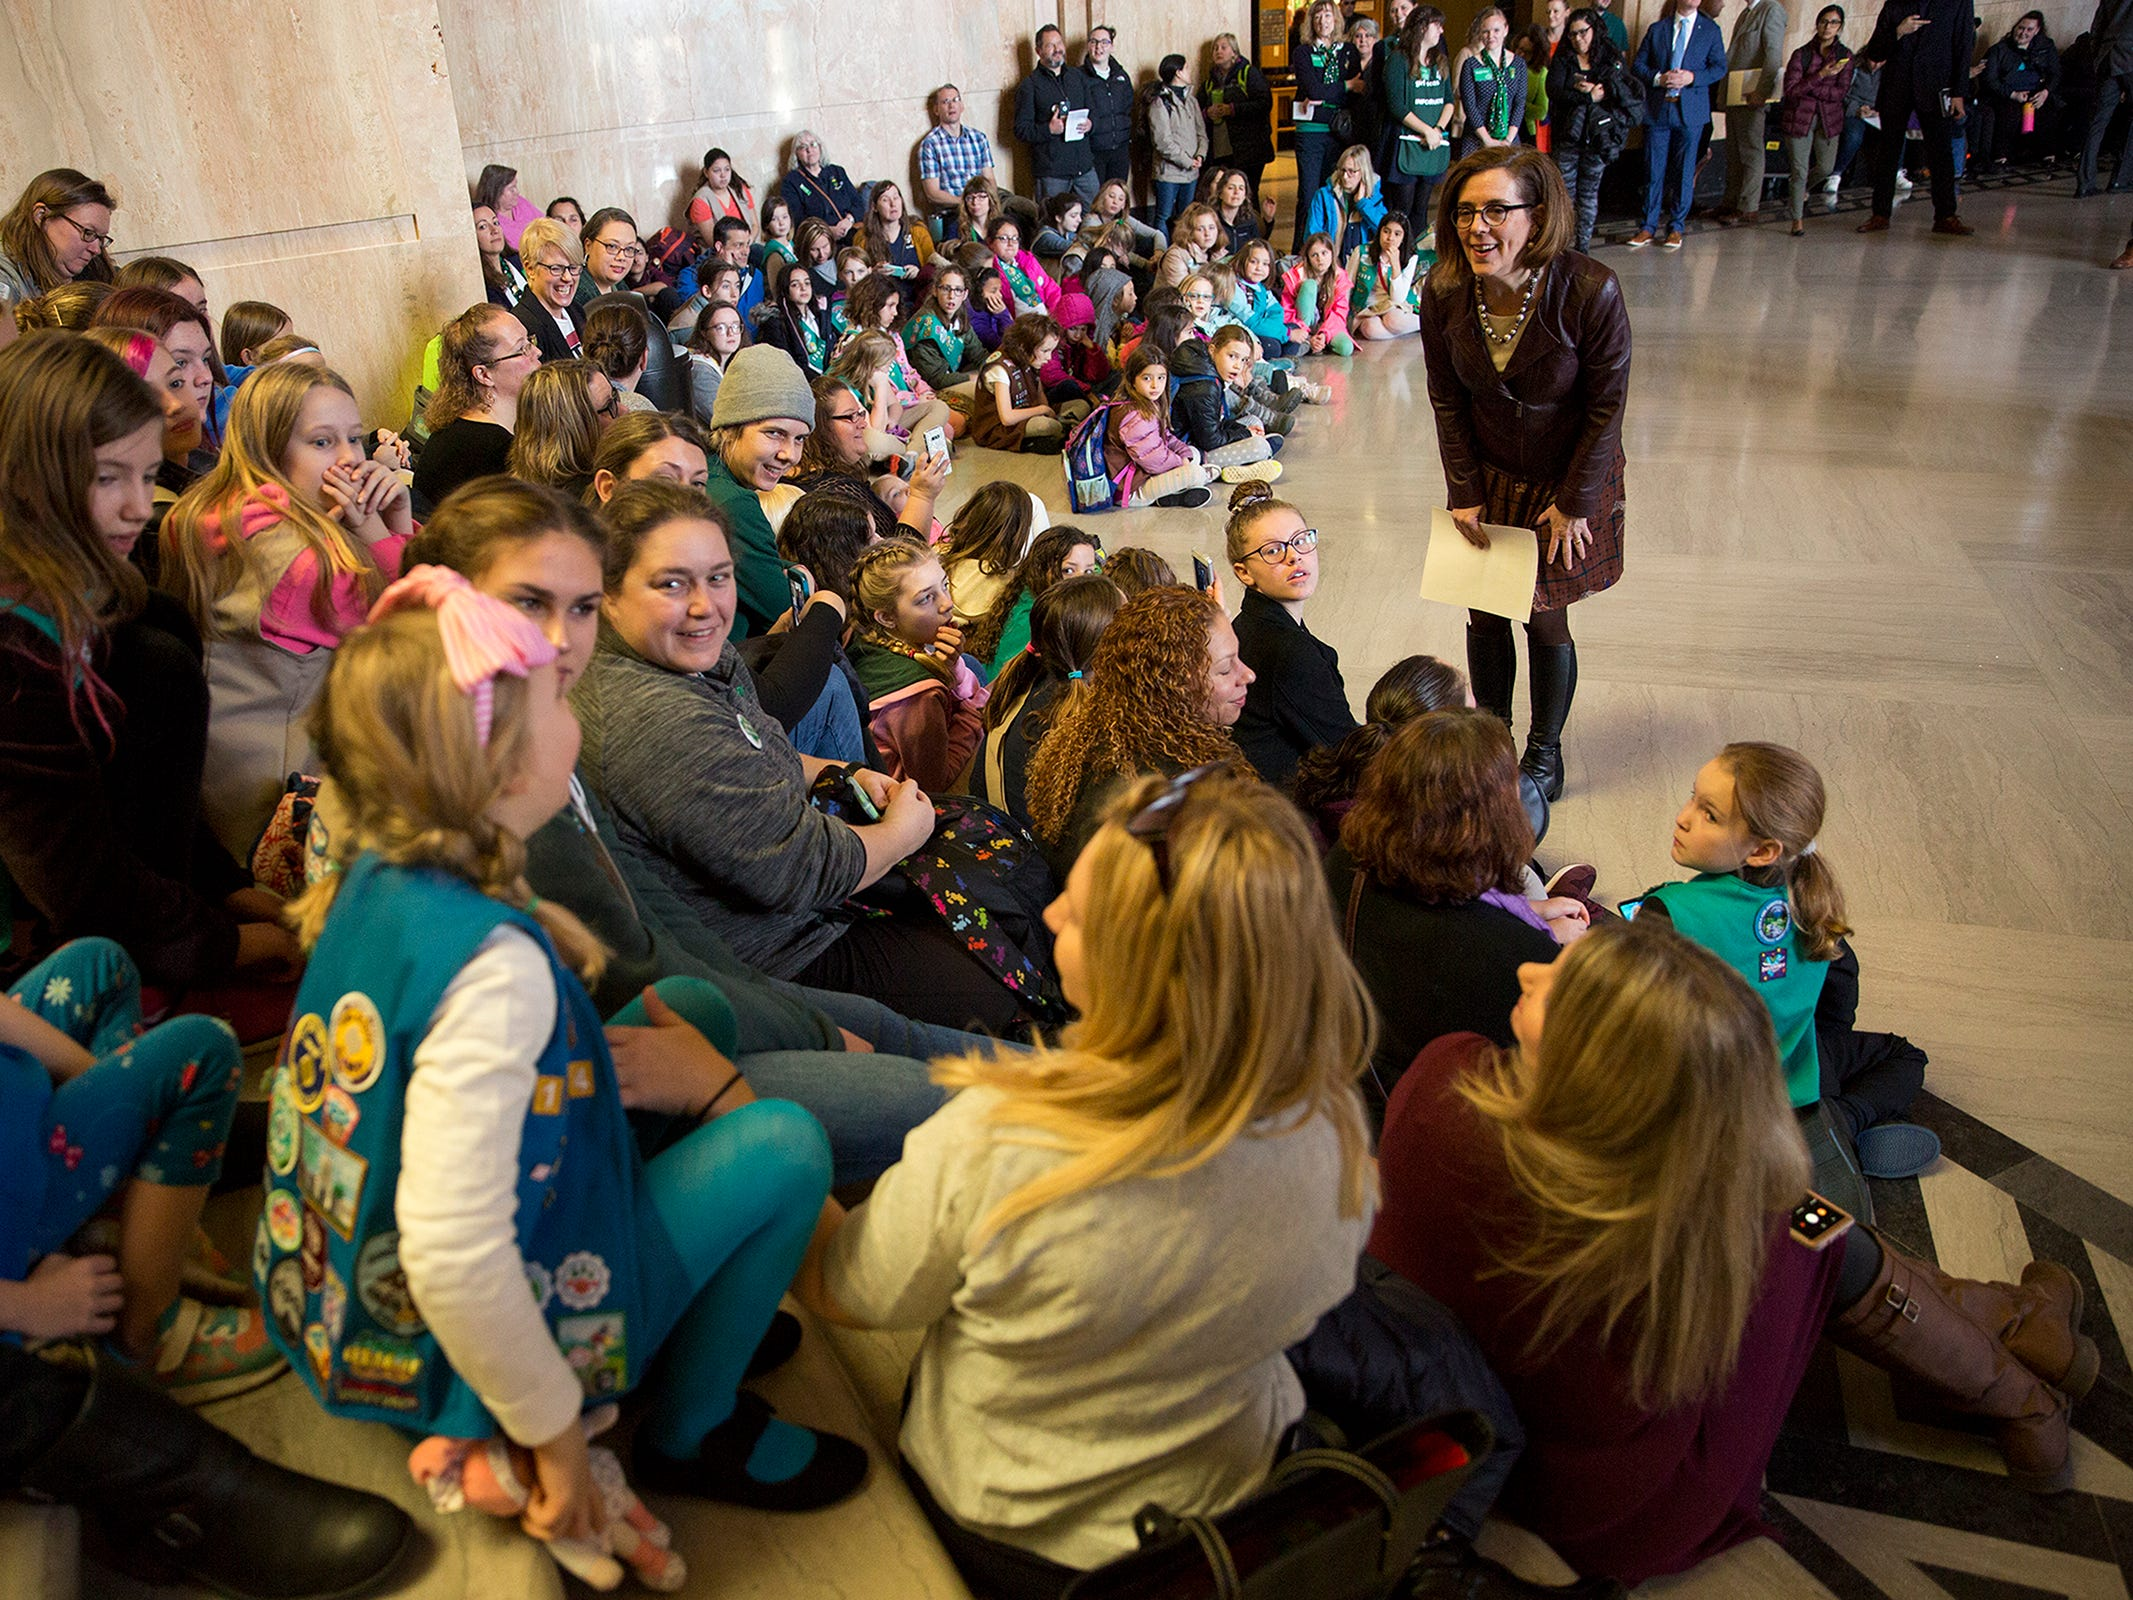 Gov. Kate Brown asks Girl Scouts from across the state what their favorite part about being in the program is during Girl Scout Leadership Day at the Oregon State Capitol in Salem March 12, 2019.